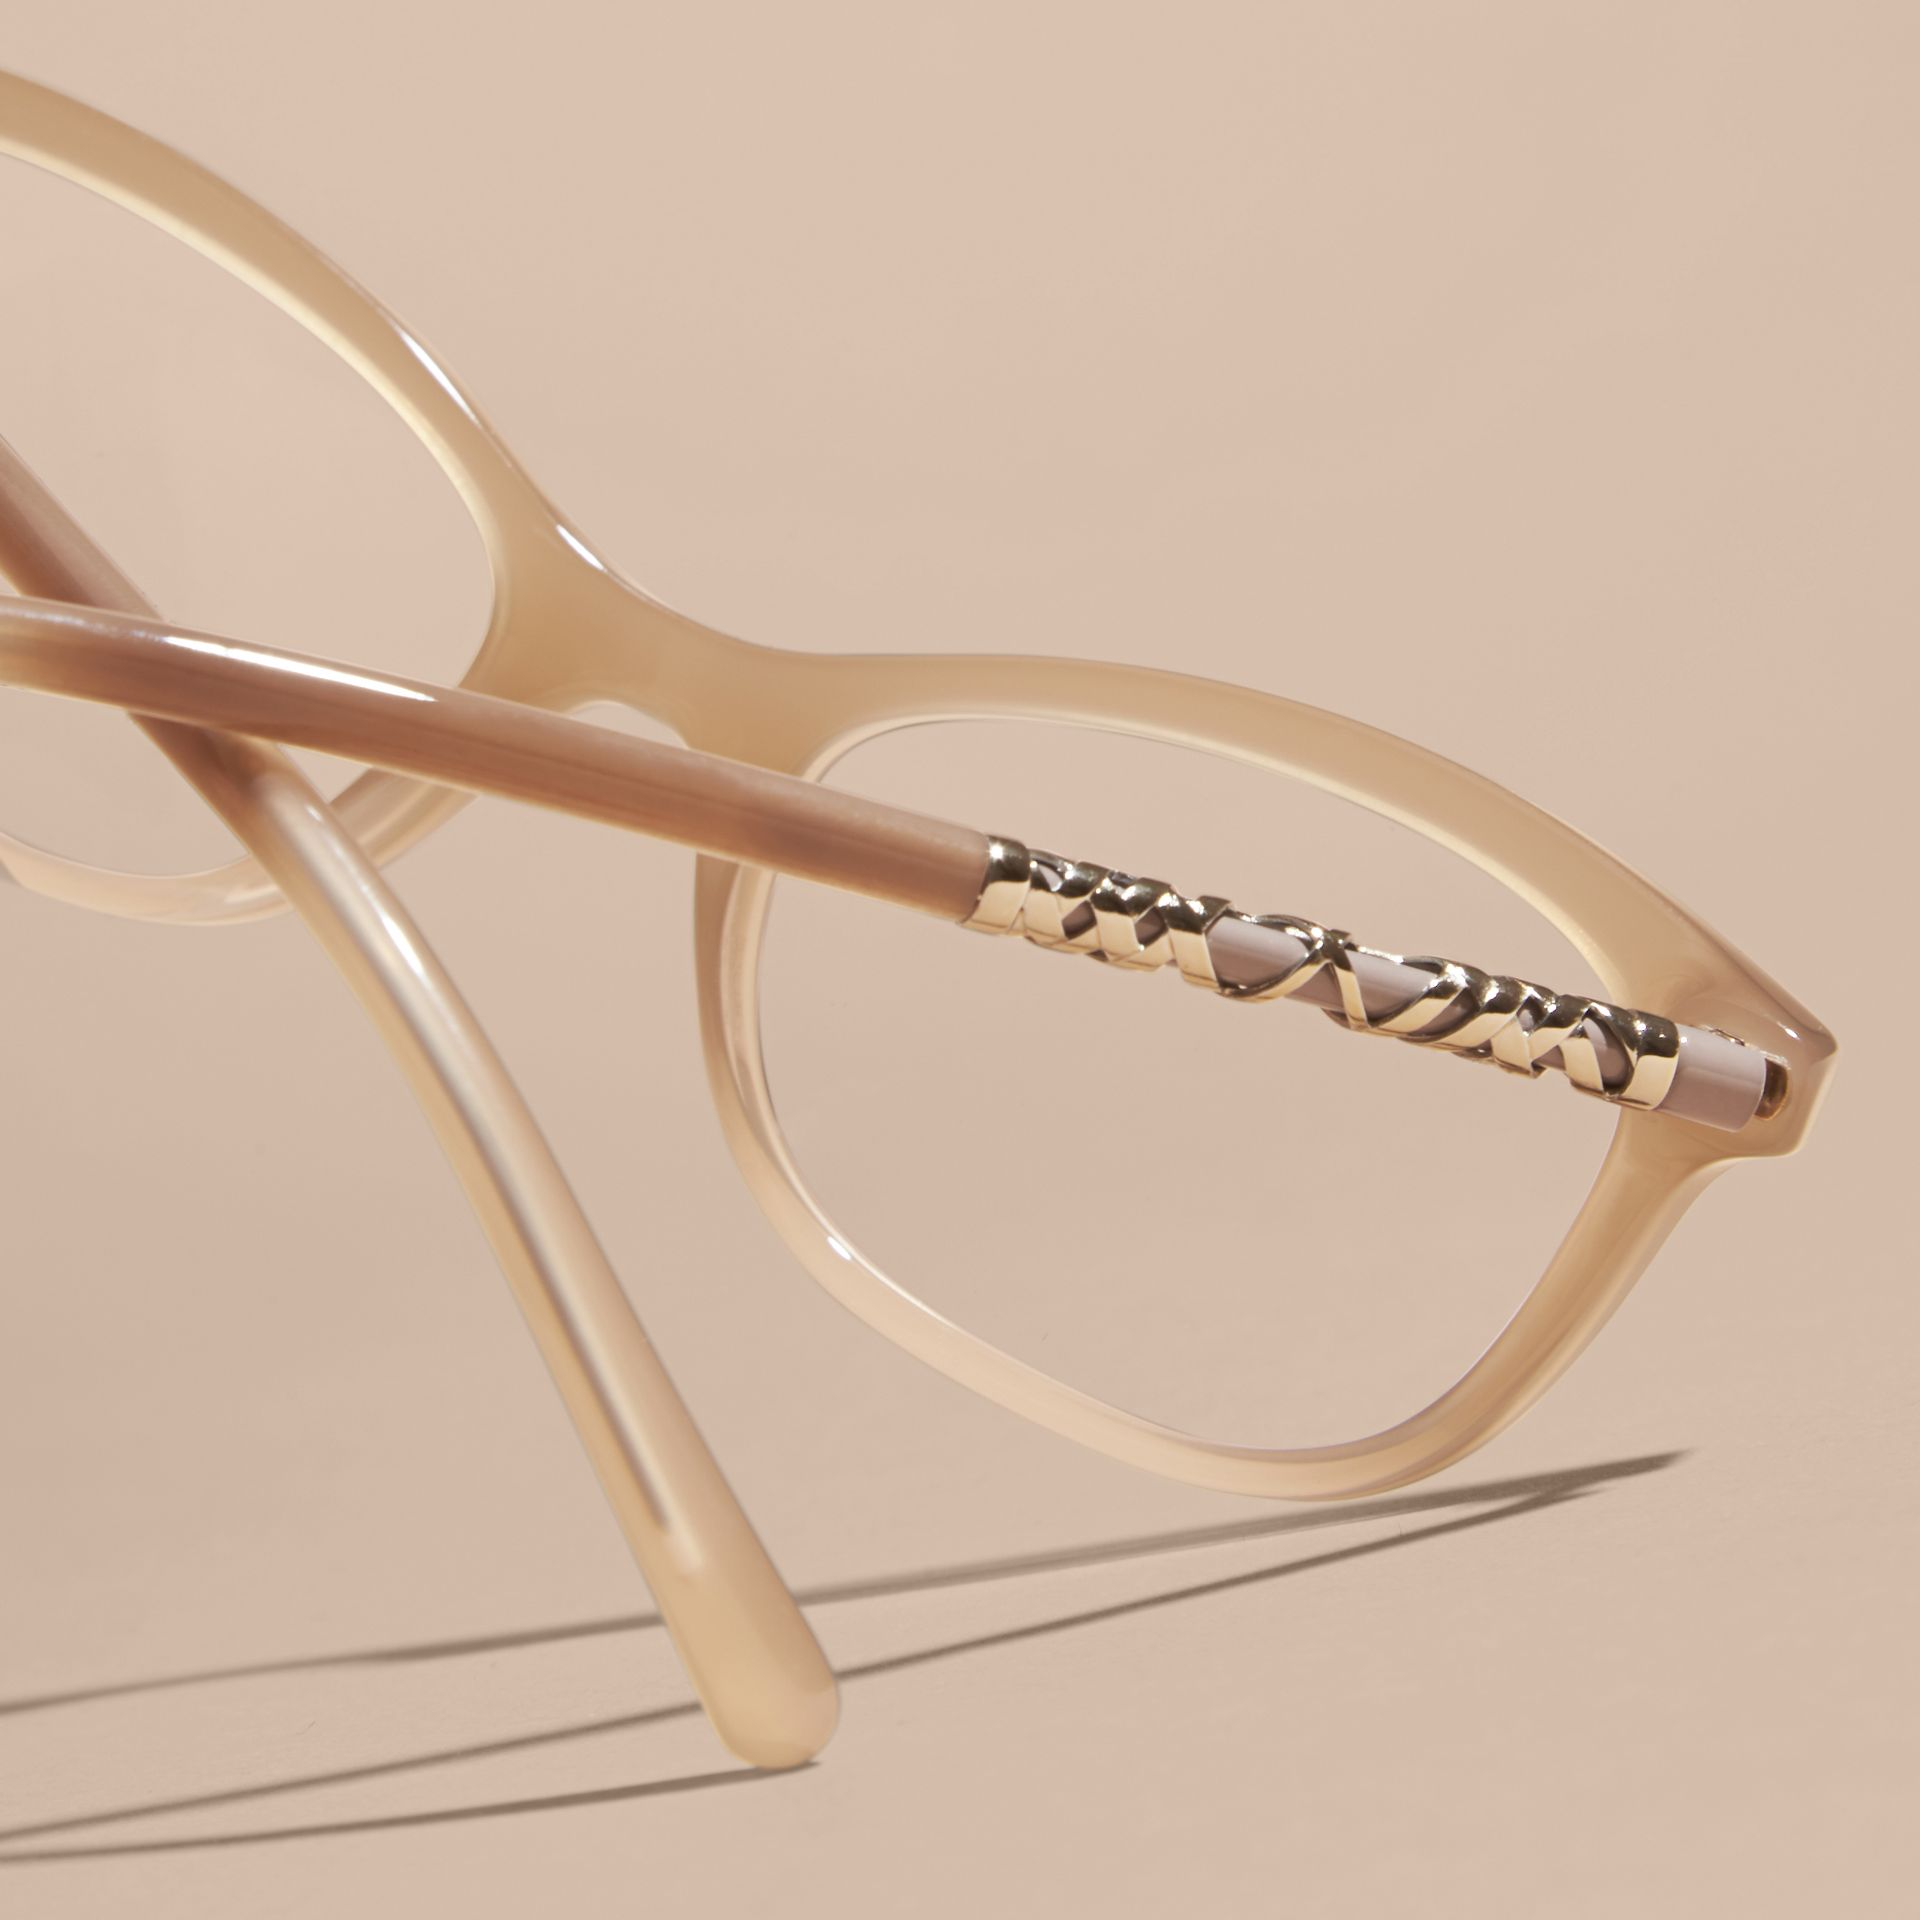 Chino grey Check Detail Oval Optical Frames Chino Grey - gallery image 4